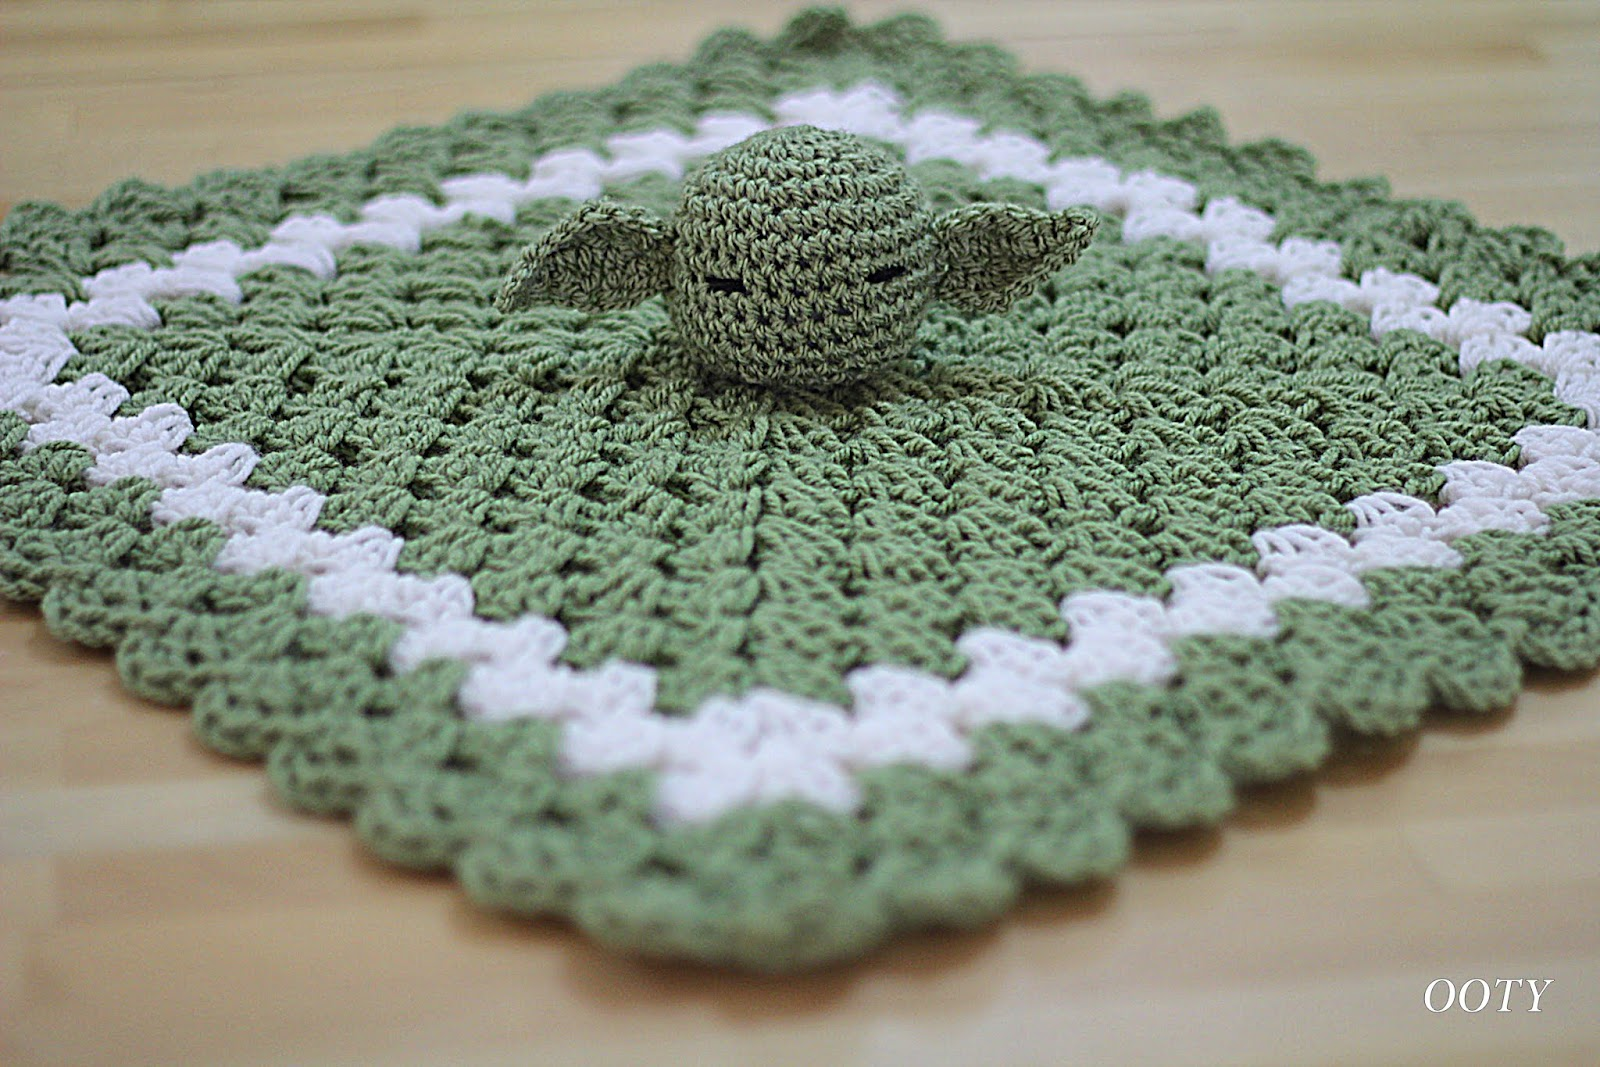 Ooty: In Crochet: New Lovey Blankets